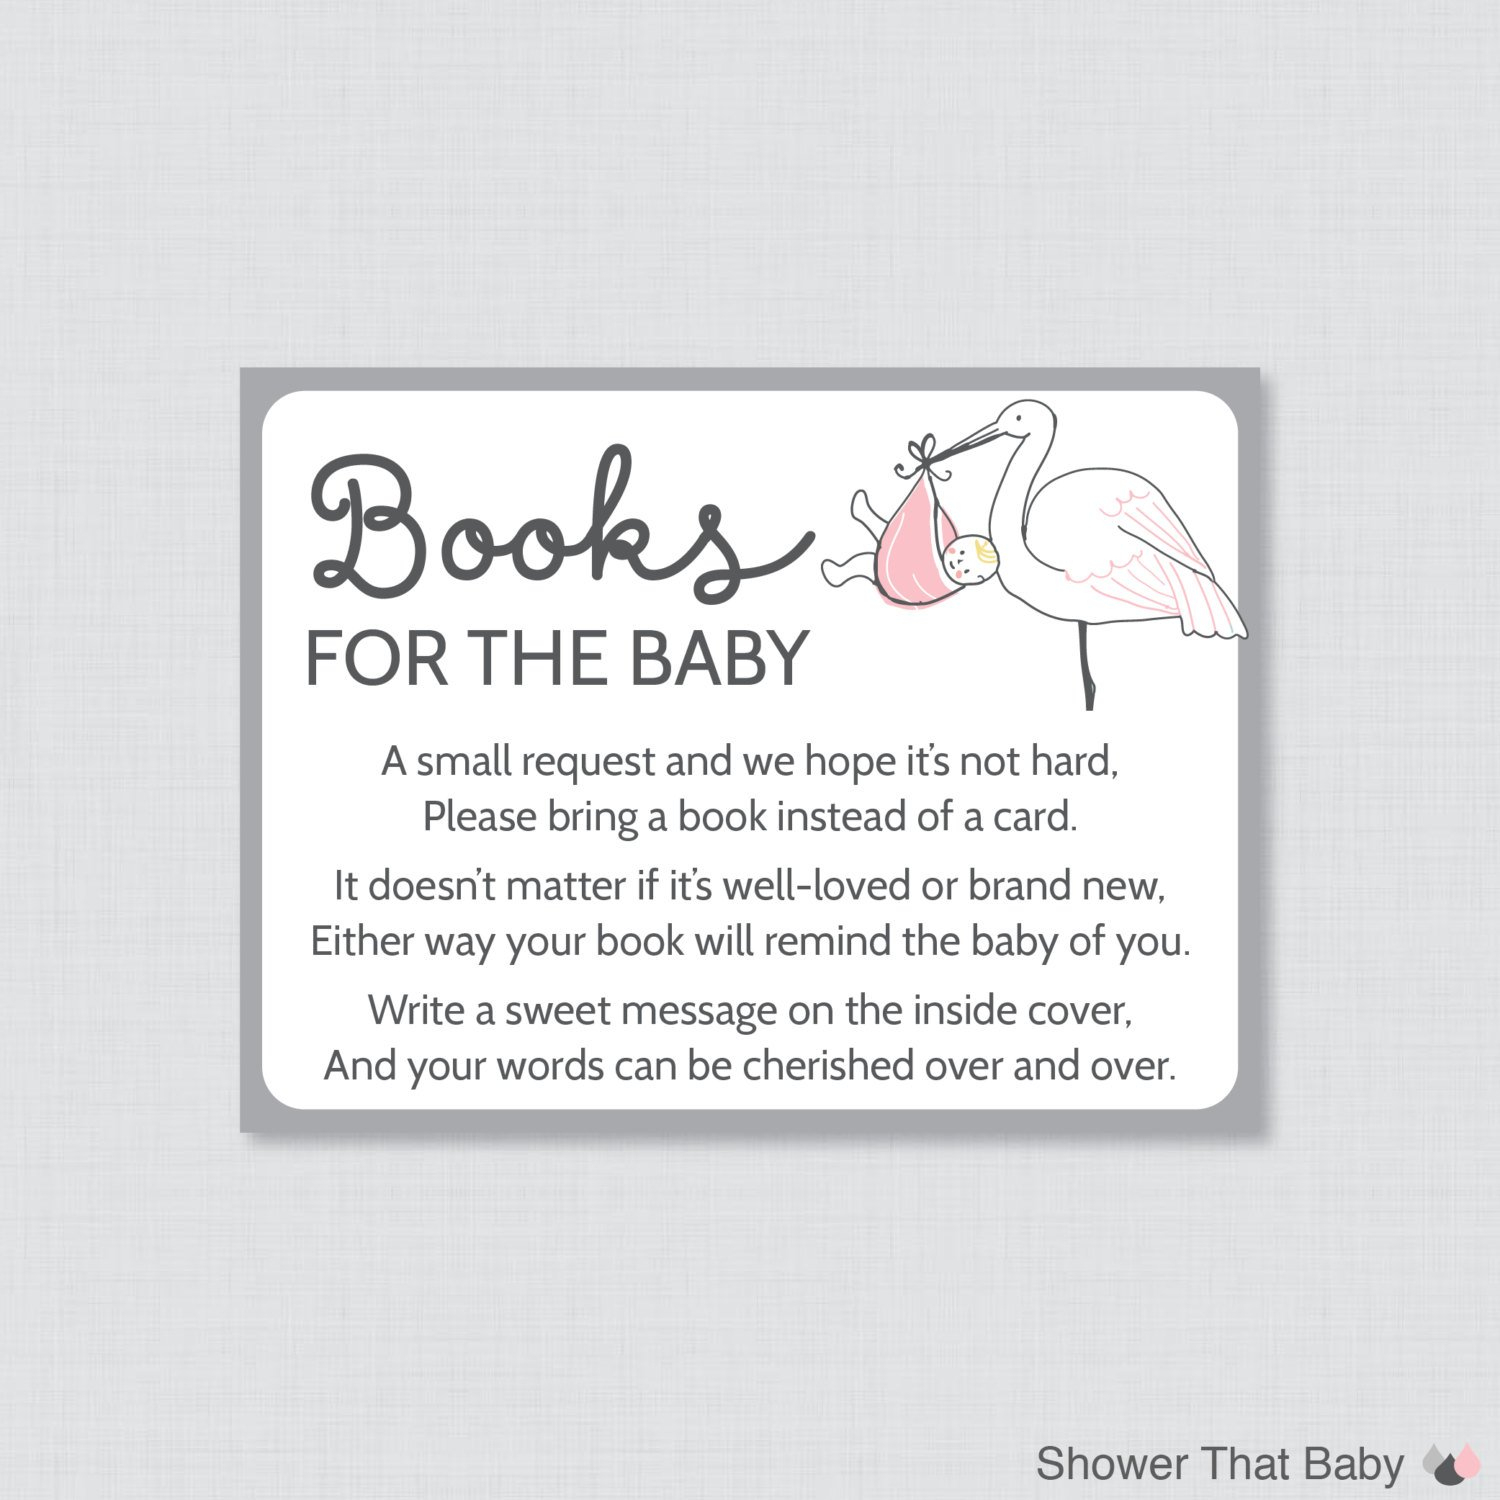 Stork Baby Shower Bring A Book Instead Of A Card Invitation Mobile - Bring A Book Instead Of A Card Free Printable